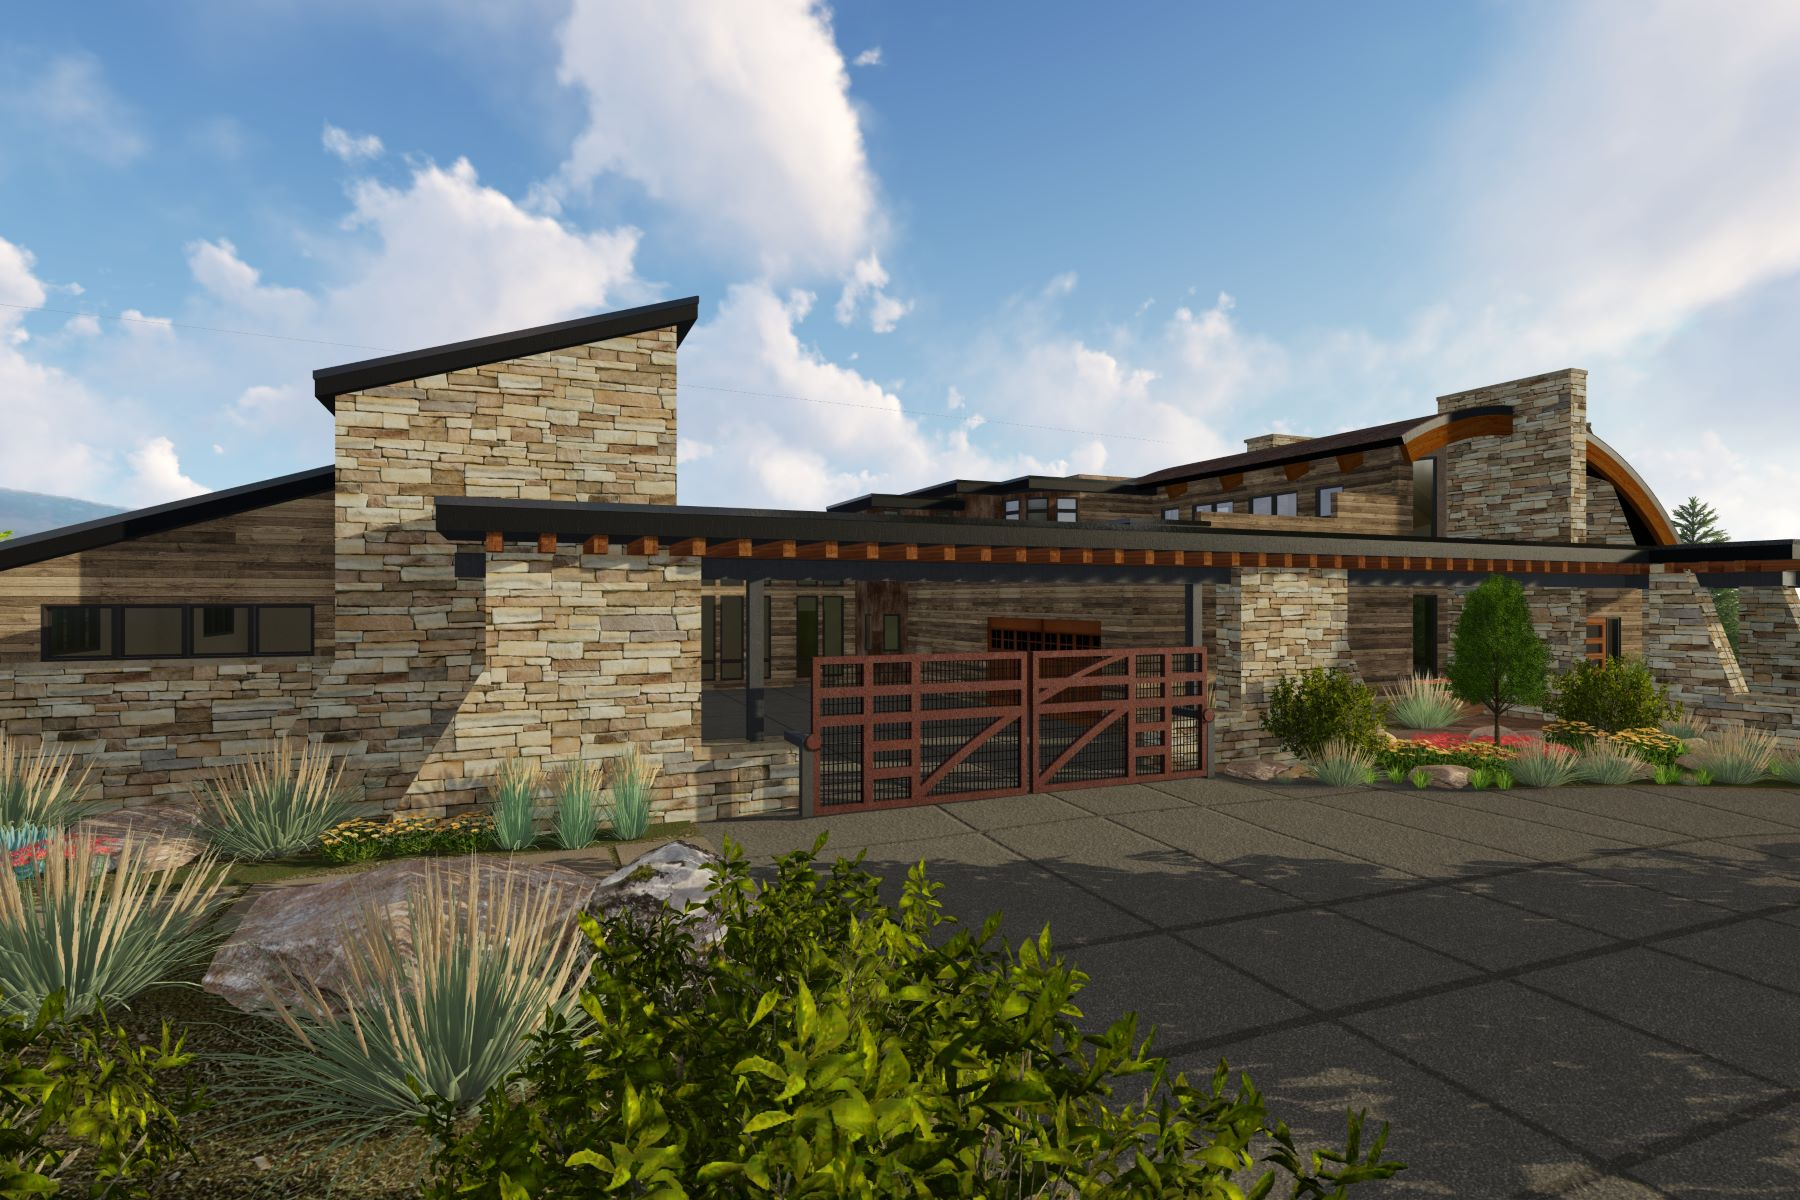 Single Family Homes for Sale at Stunning Mountain Contemporary Home 3382 Keep Drive Sedalia, Colorado 80135 United States